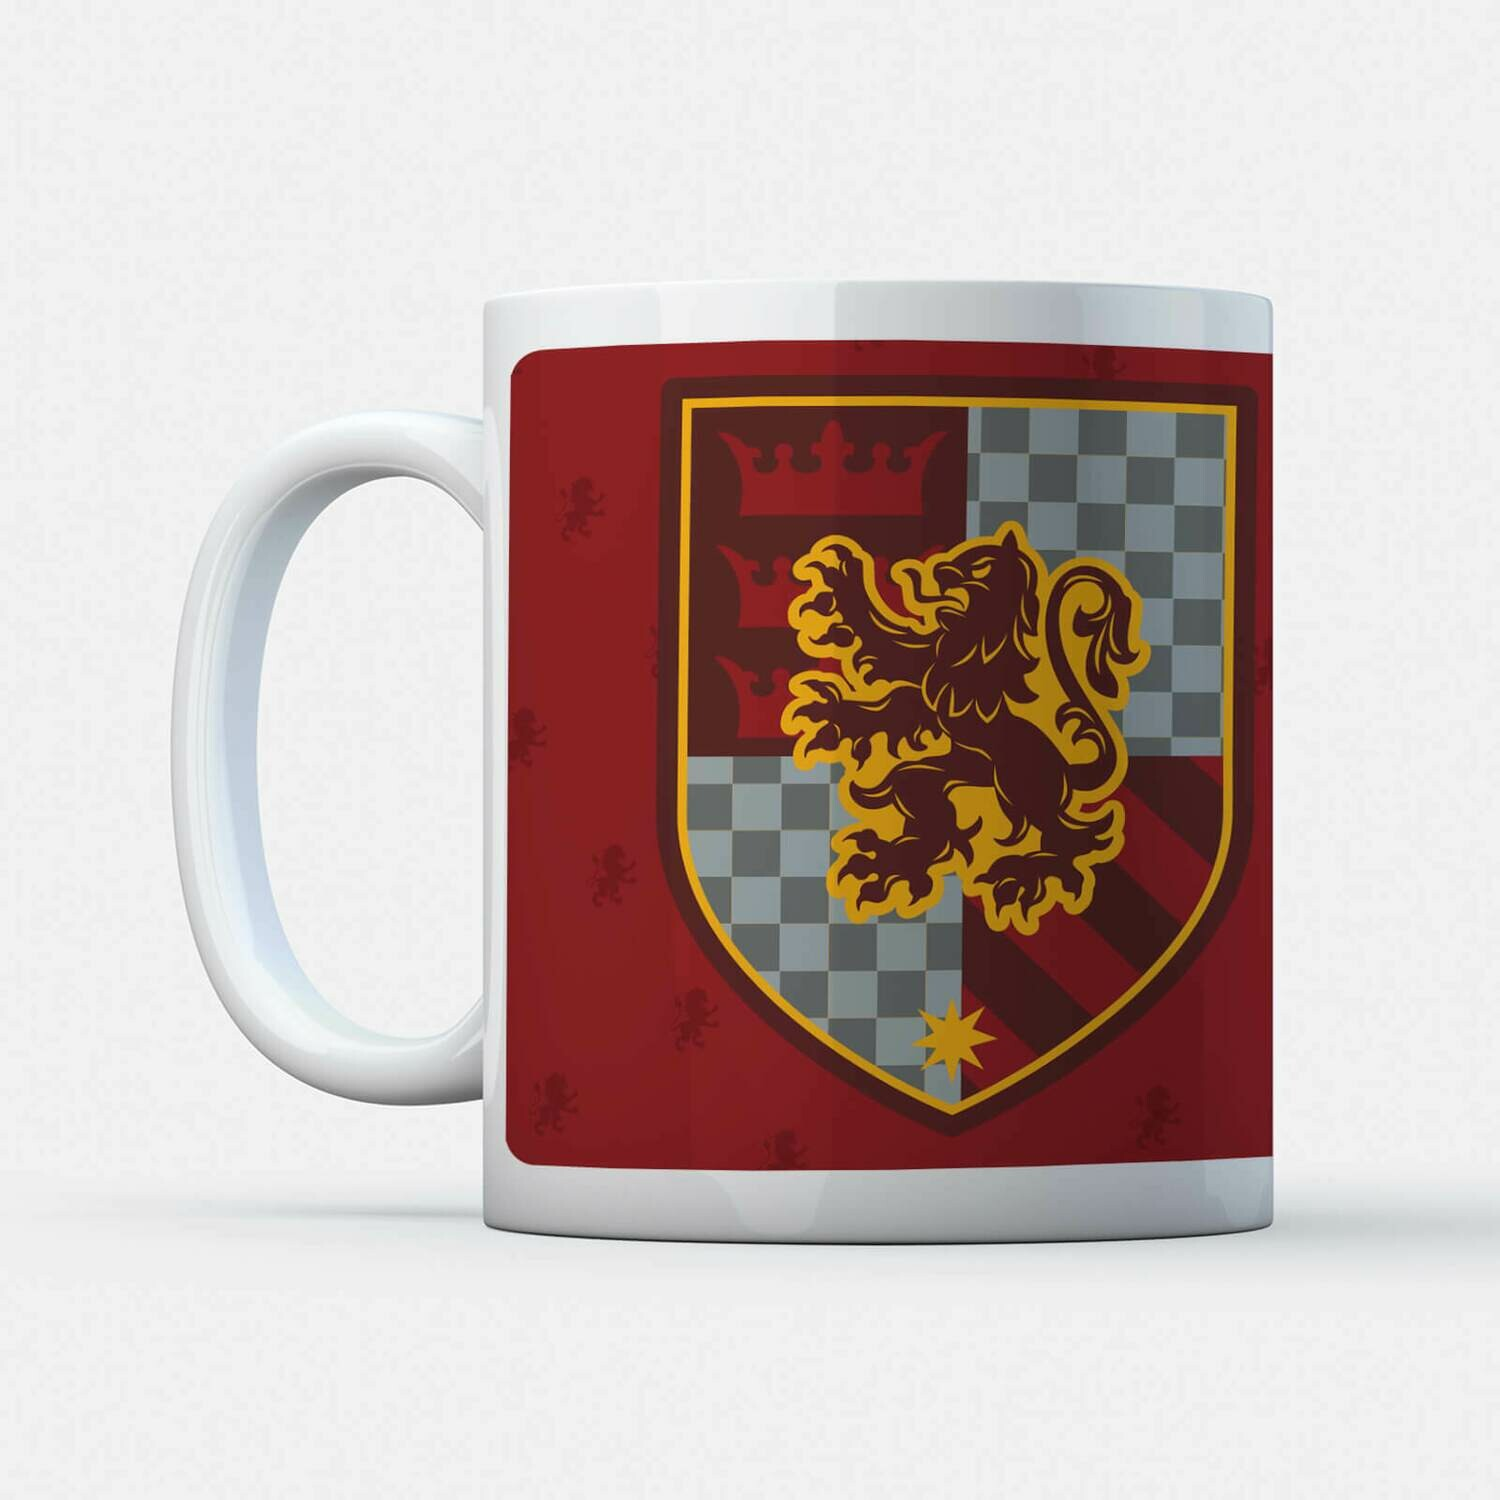 Harry Potter Gryffindor House Mug